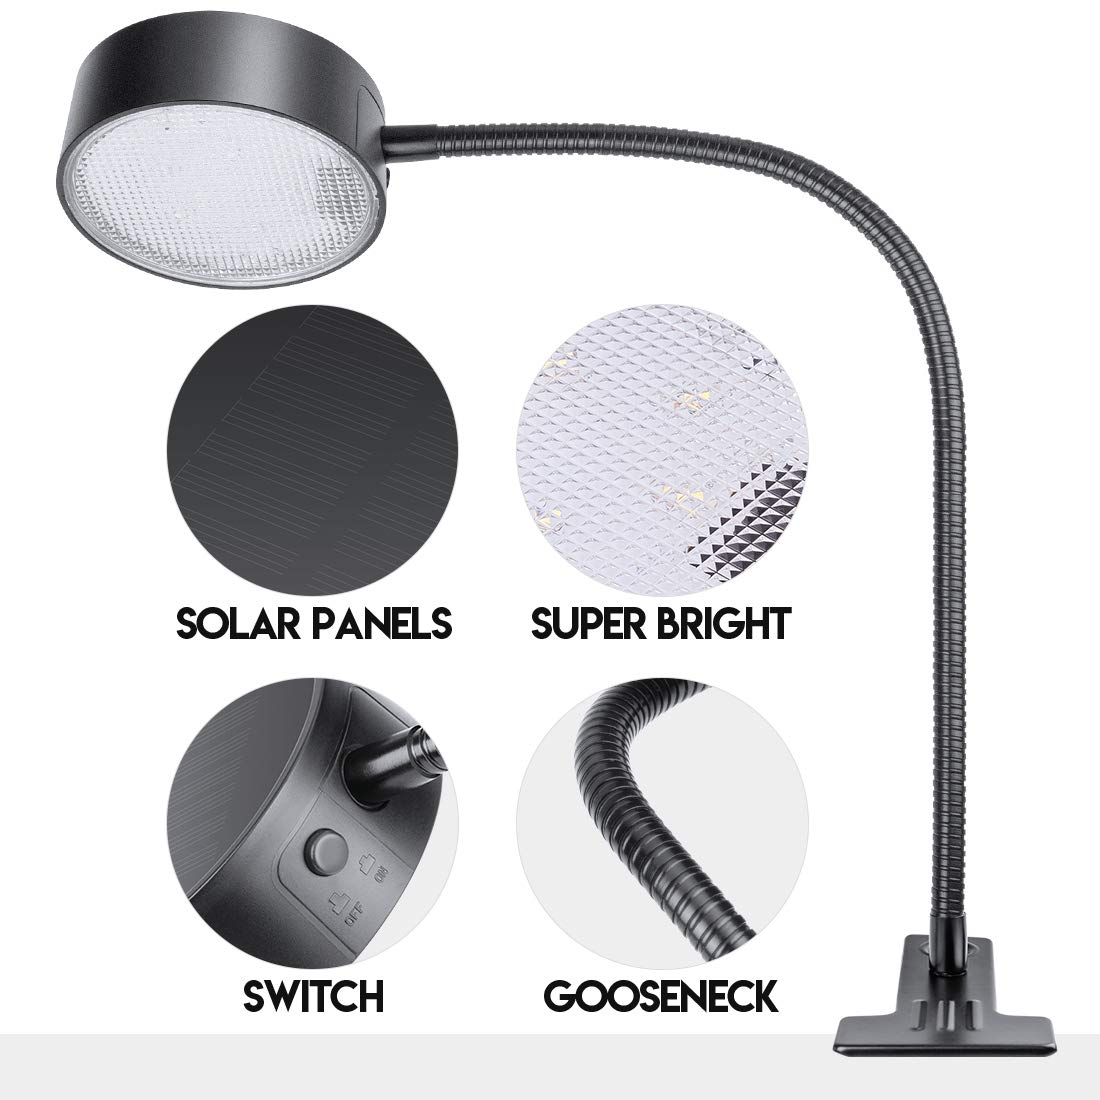 LeiDrail Grill Light LED Solar BBQ Lights Super Bright Wide-Angle Barbecue Lamp Flexible Gooseneck Outdoor Waterproof Anti-Shedding Clip for Charcoal Electric Desk Work Bench by LeiDrail (Image #7)